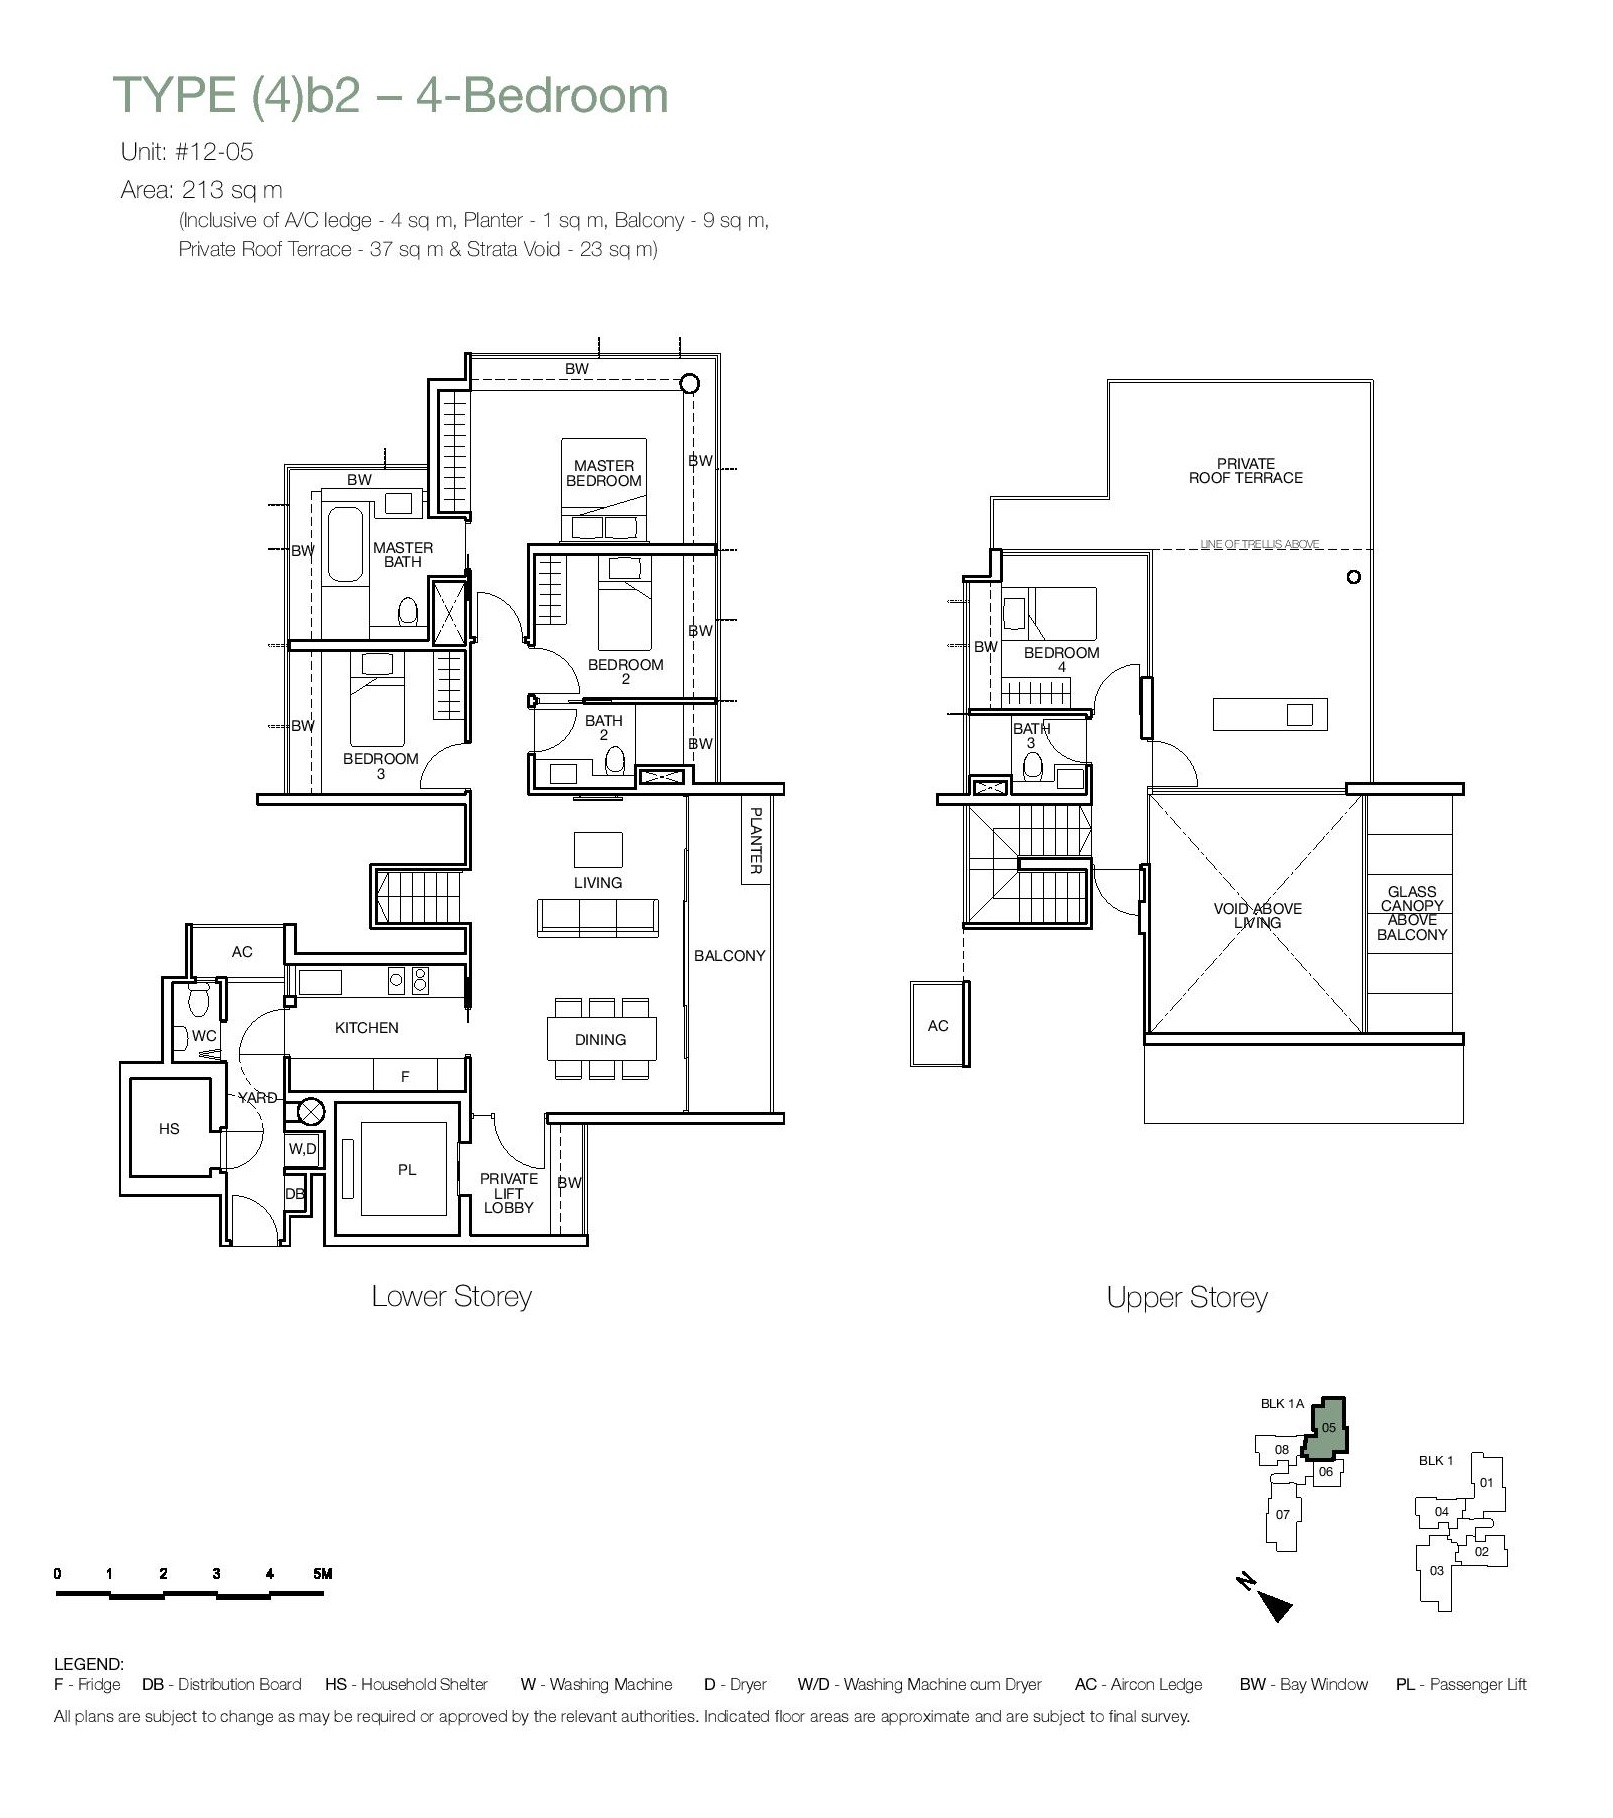 One Balmoral 4 Bedroom Roof Terrace Floor Type (4)b2 Plans